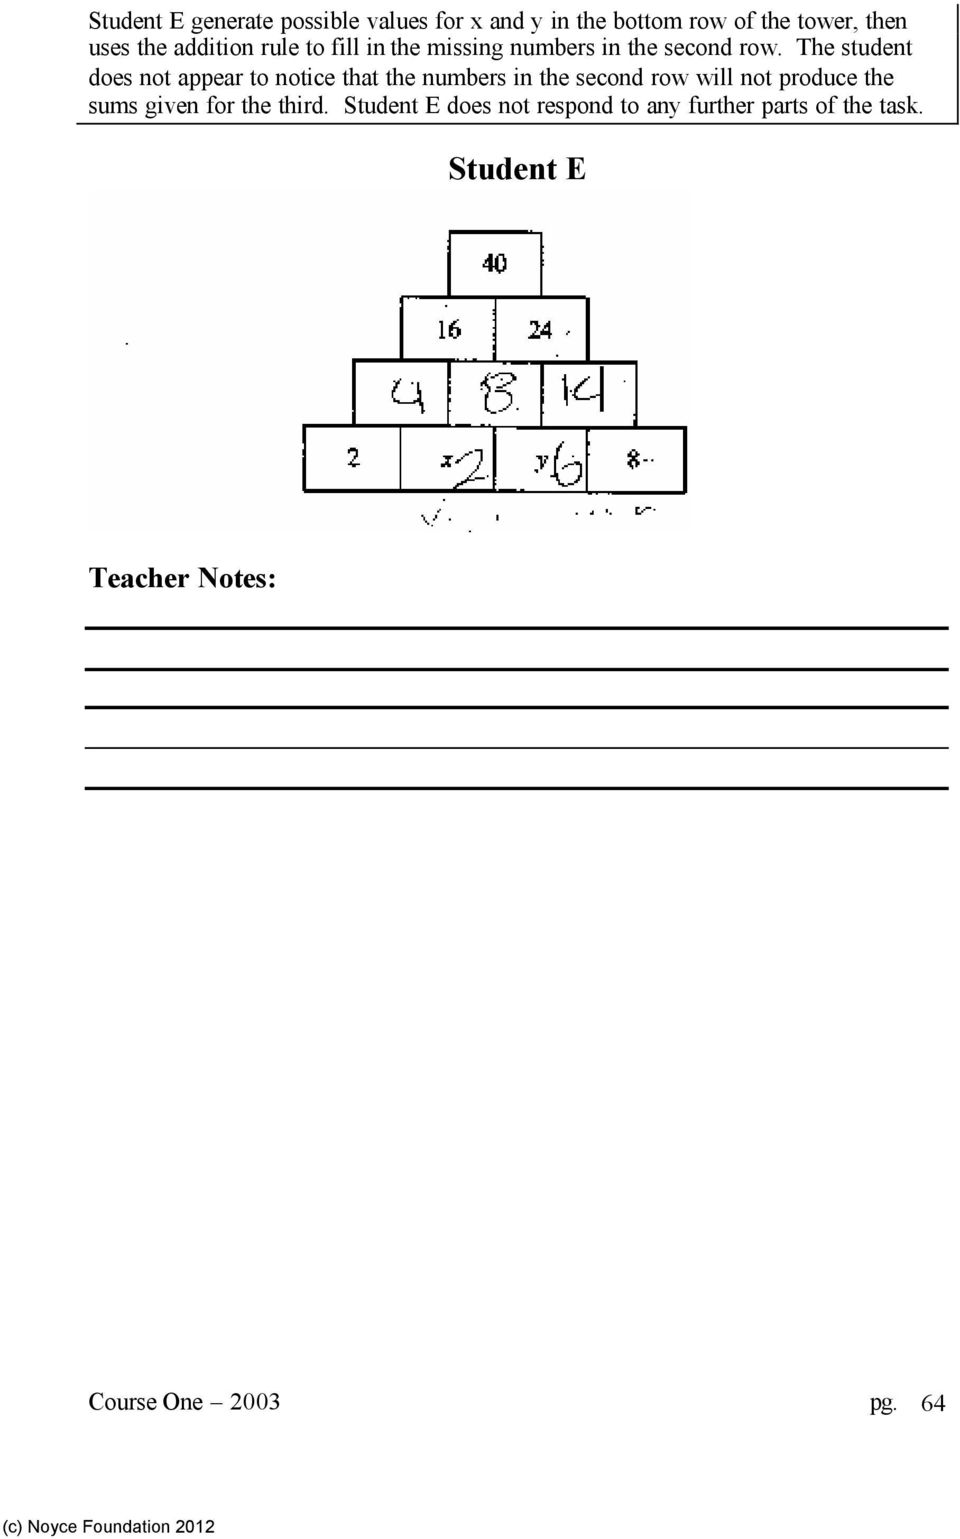 The student does not appear to notice that the numbers in the second row will not produce the